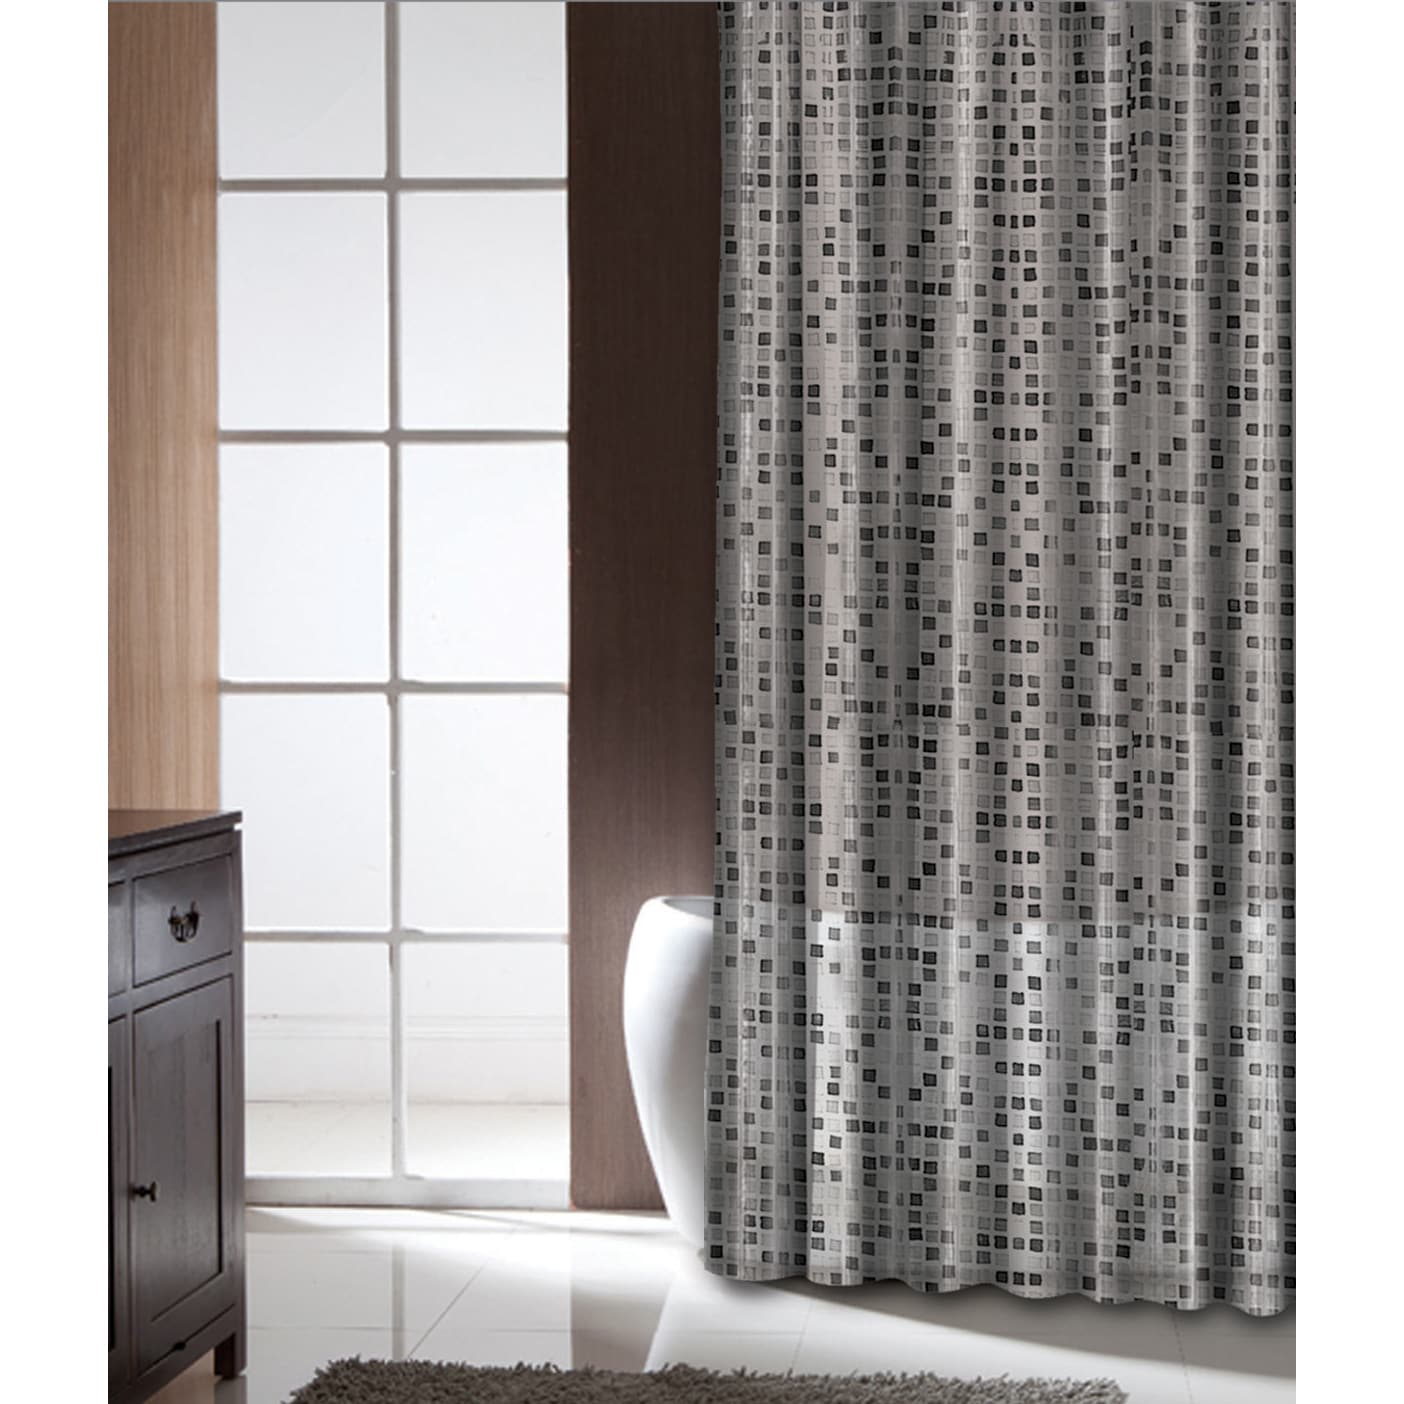 Famous Home Tiles Black Shower Curtain (Color: Black, Whi...